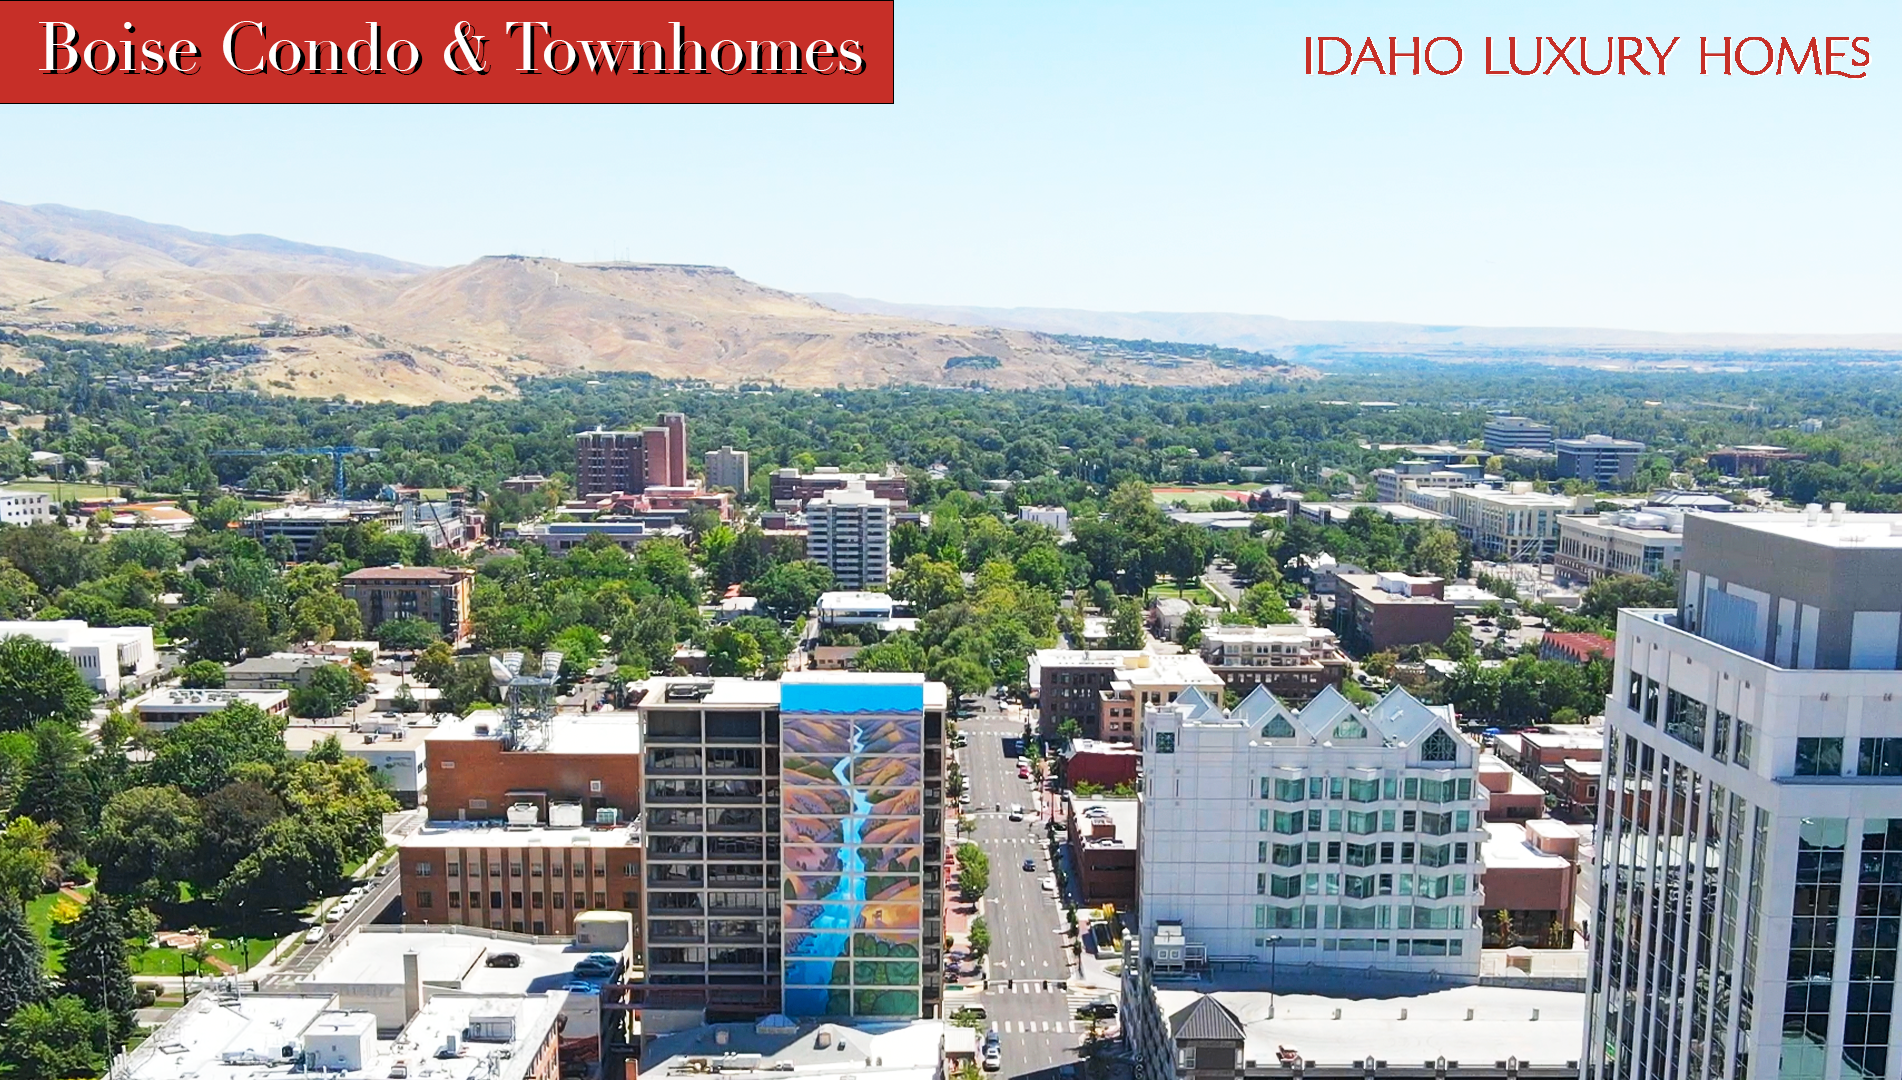 Boise Condo and Townhomes Real Estate